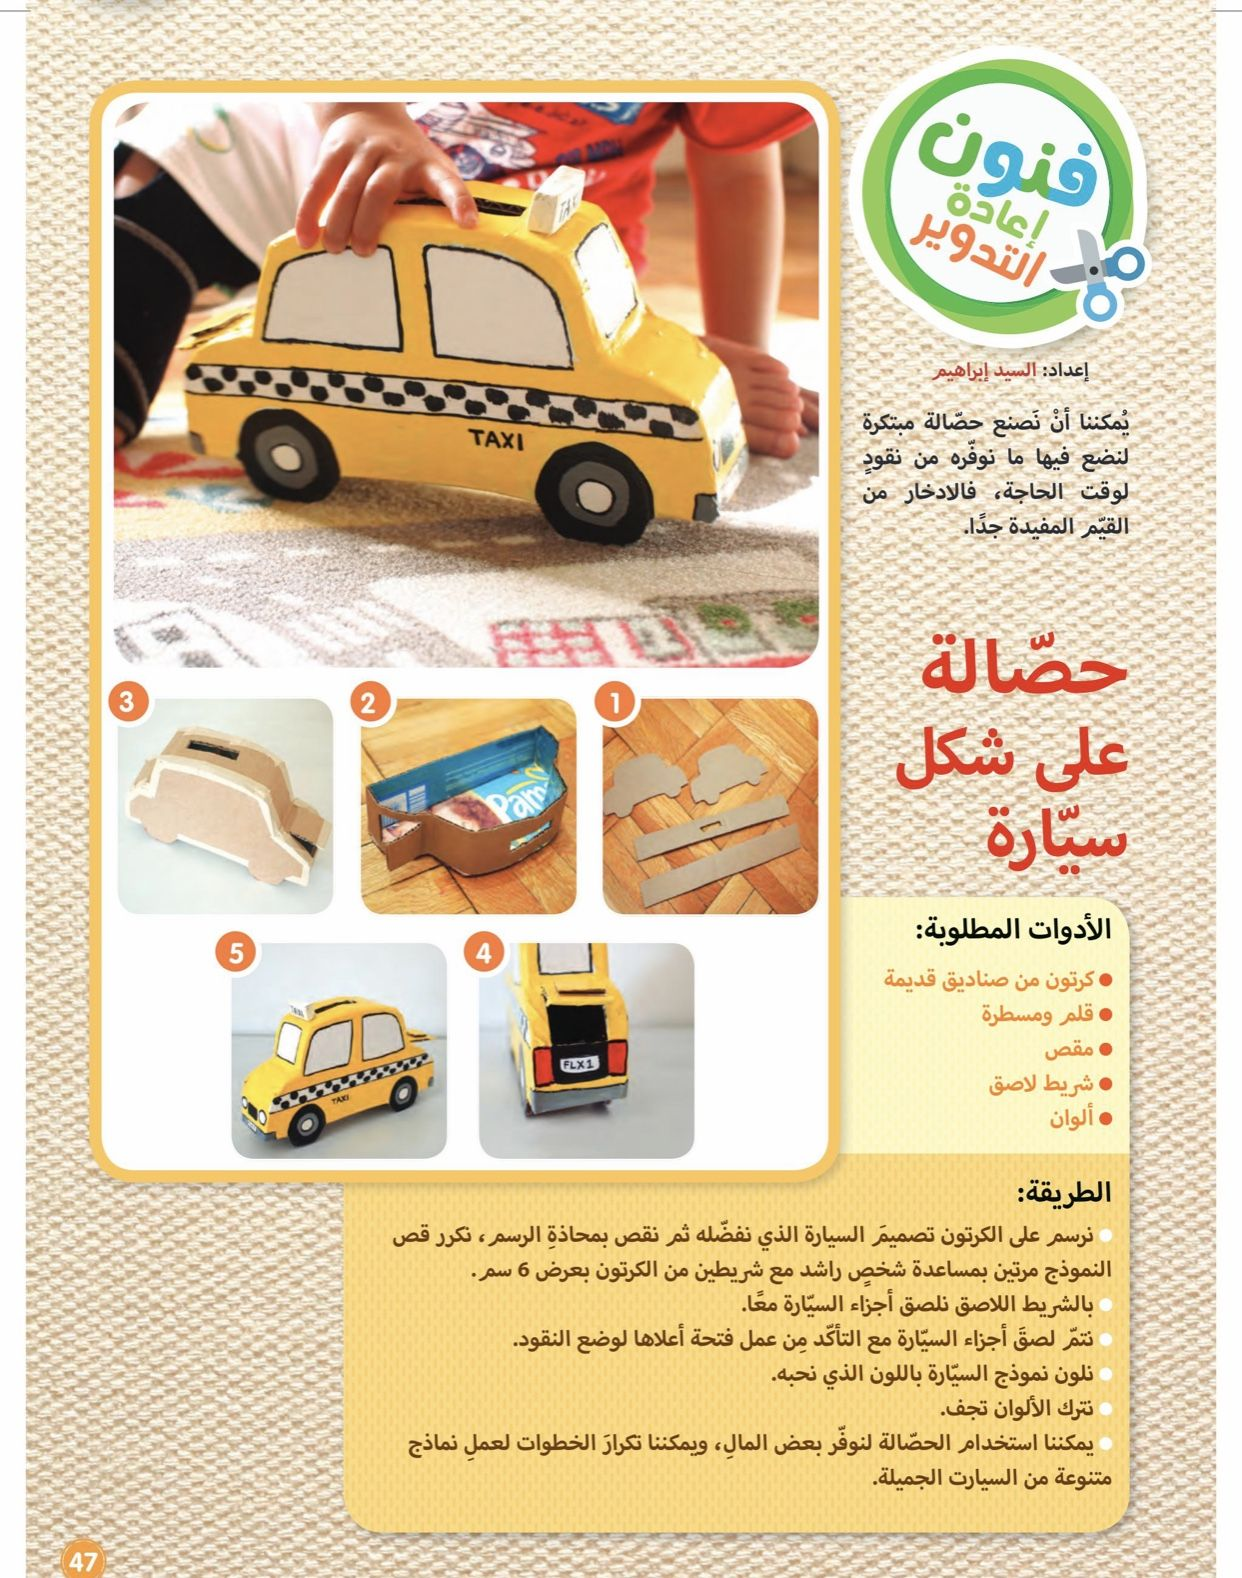 Pin By Roma 92 On افكار Toy Car Wooden Toy Car Wooden Toys